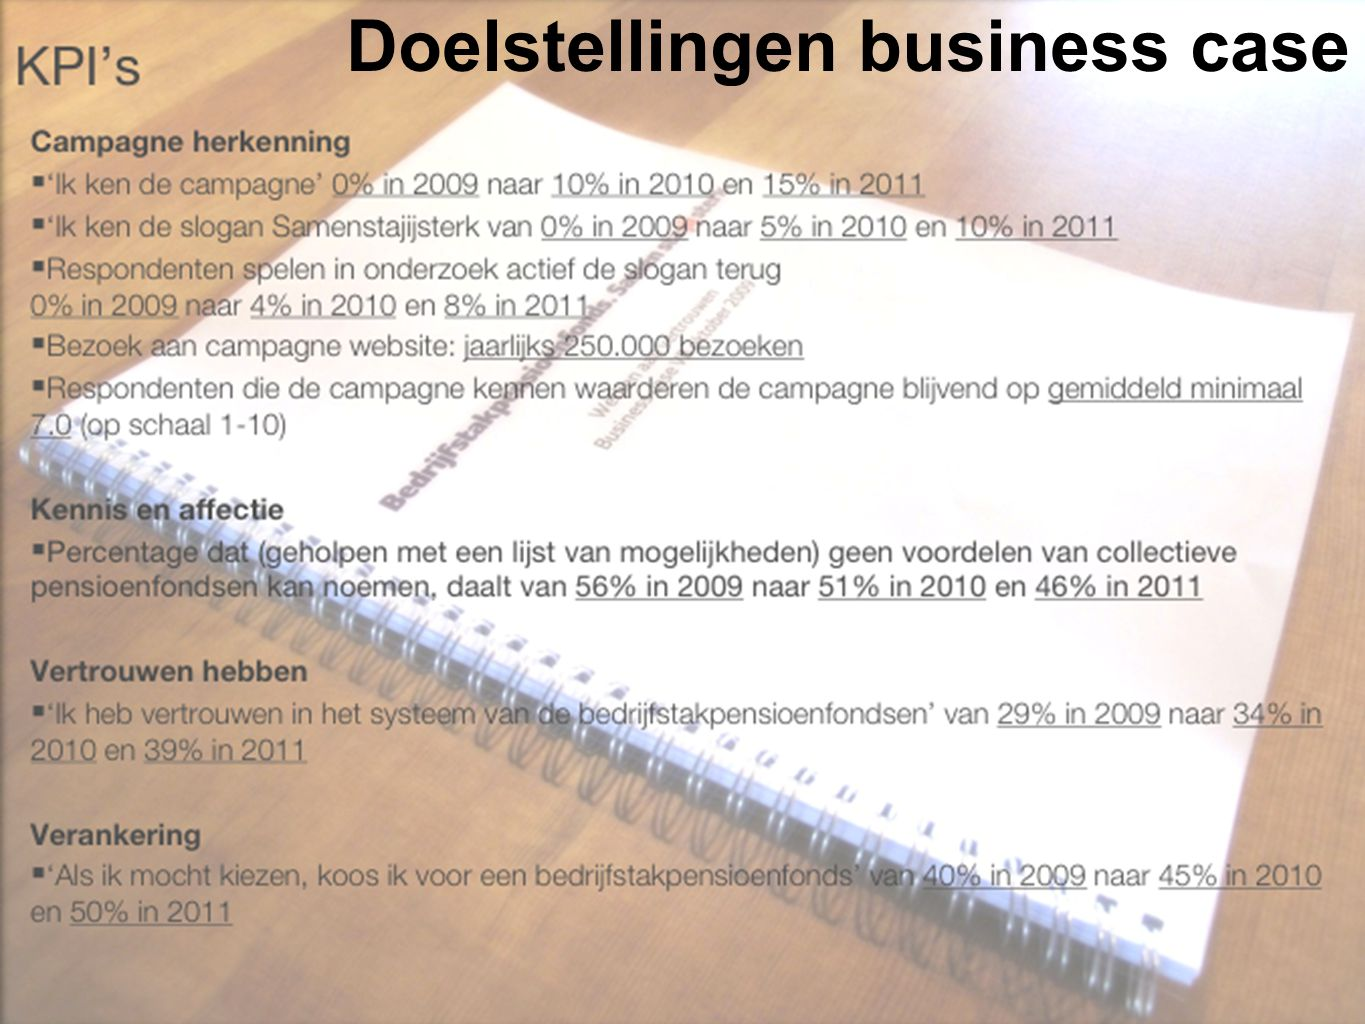 Doelstellingen business case